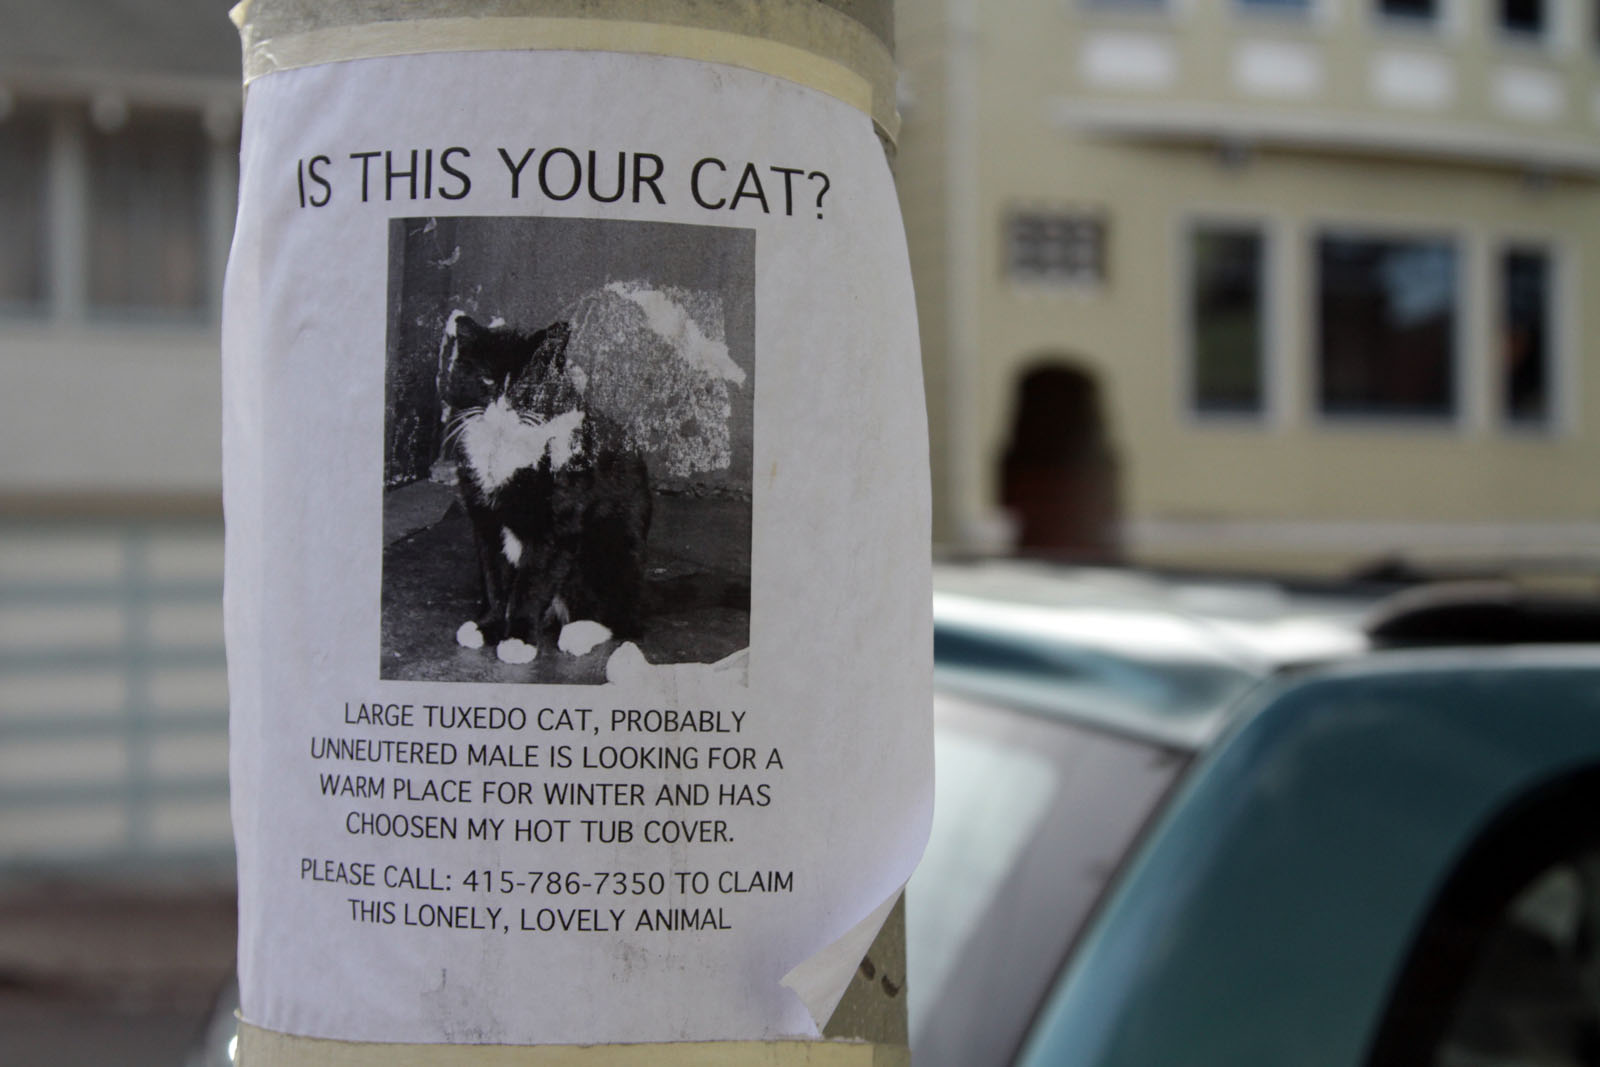 Is this your cat?